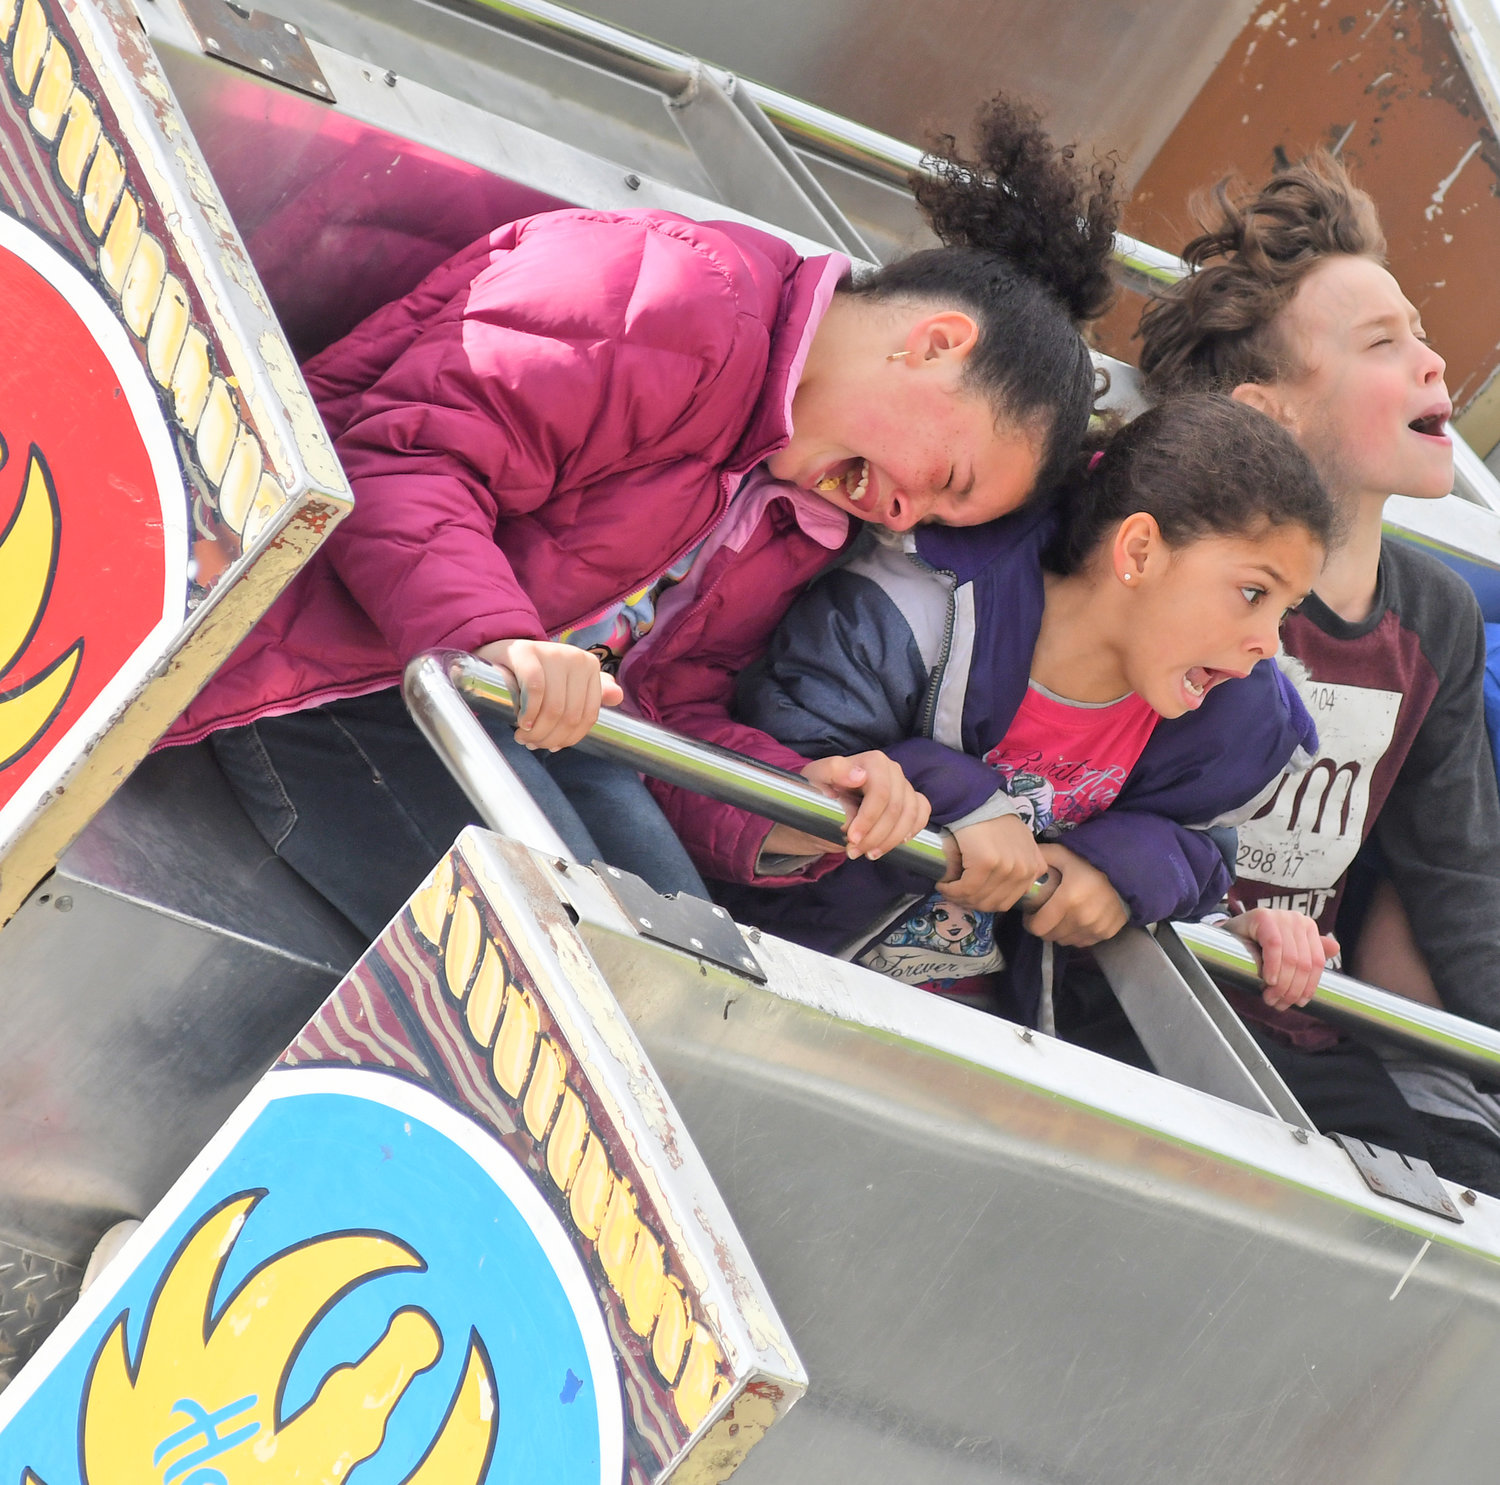 HAVING A FIELD DAY — Sisters Ayriana Henderson, 9, and Briana Henderson, 5, ride Captain Kat's Sea Ray at the Rome Catholic School Festival on Saturday afternoon. The festival is a major fundraiser for the school, Principal Nancy Wilson has said.